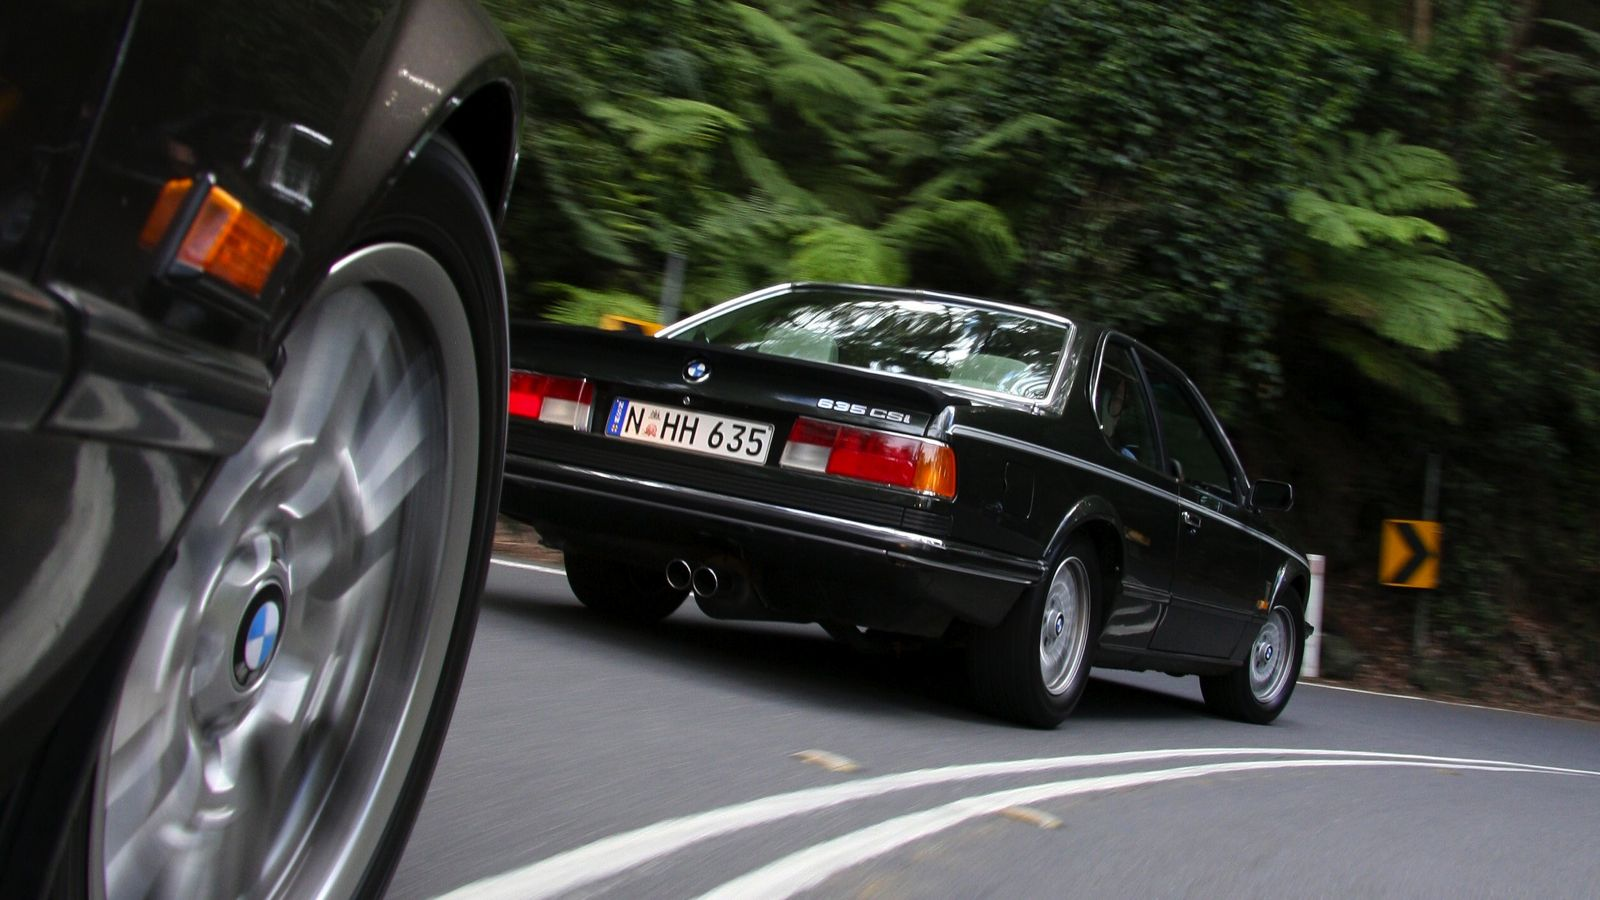 Police Car Chase Wallpaper Your Ridiculously Cool Bmw 635 Csi Wallpaper Is Here